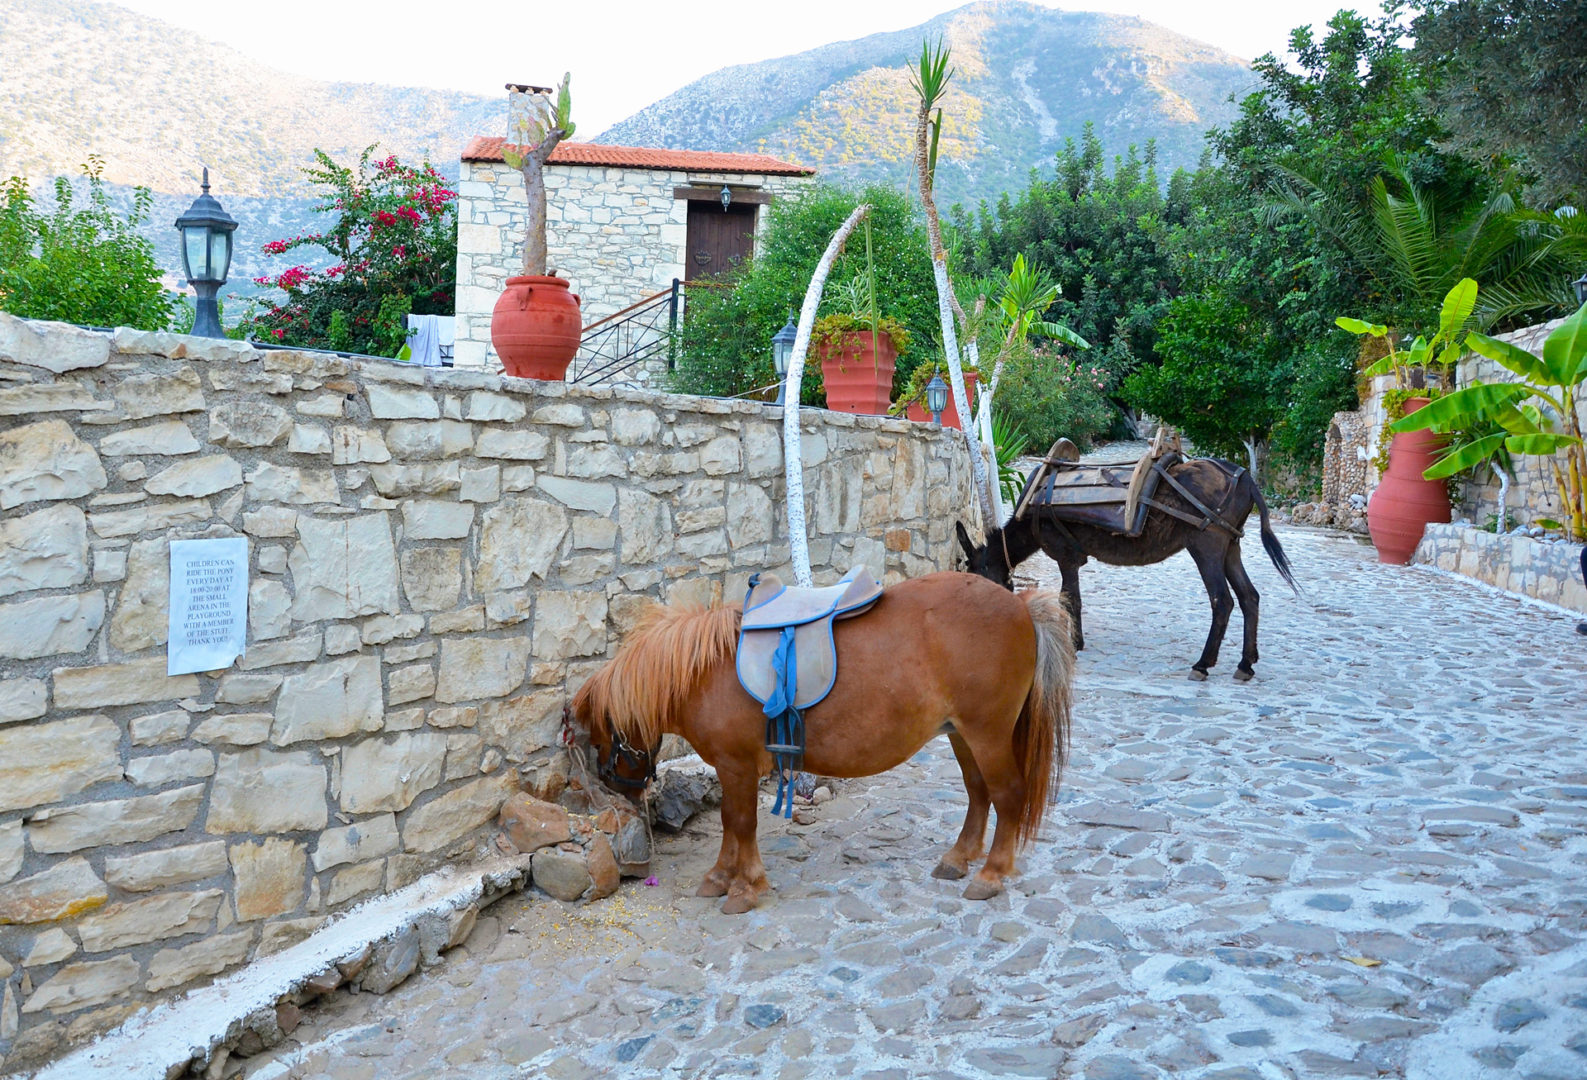 Hotel in Bali Crete - Stone Village - Farm Animals 11